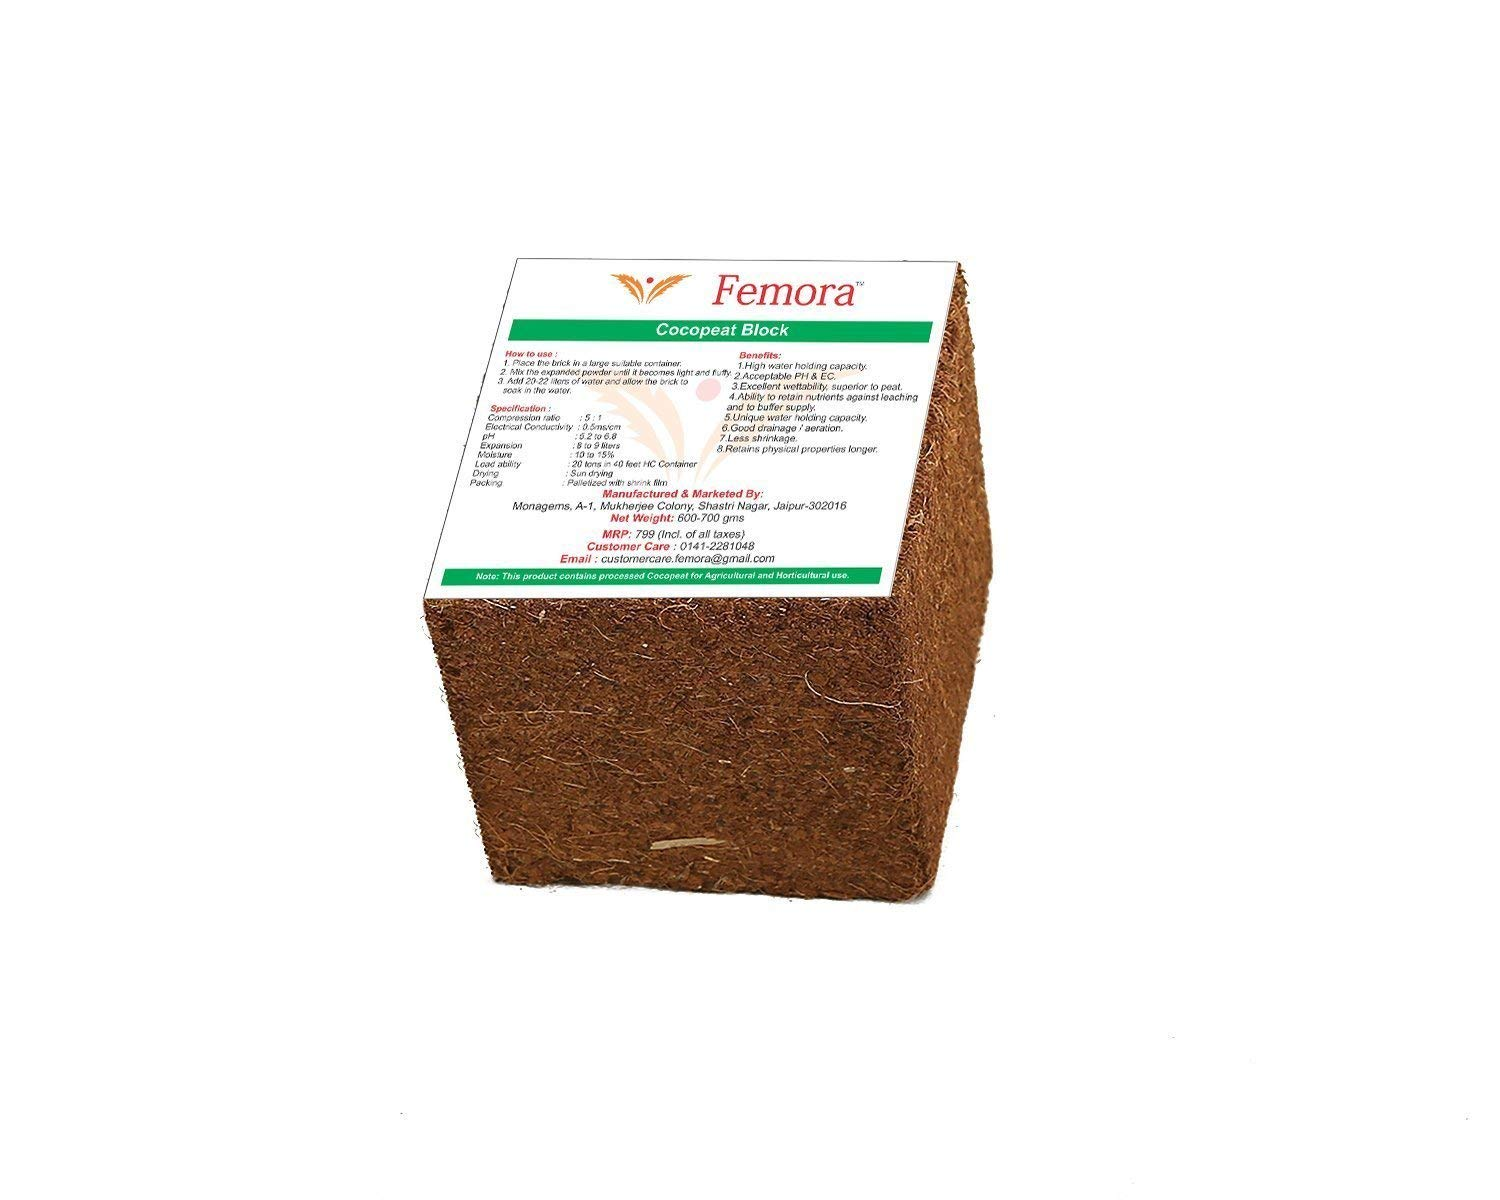 Femora Natural Cocopeat Block - 4.5 kg